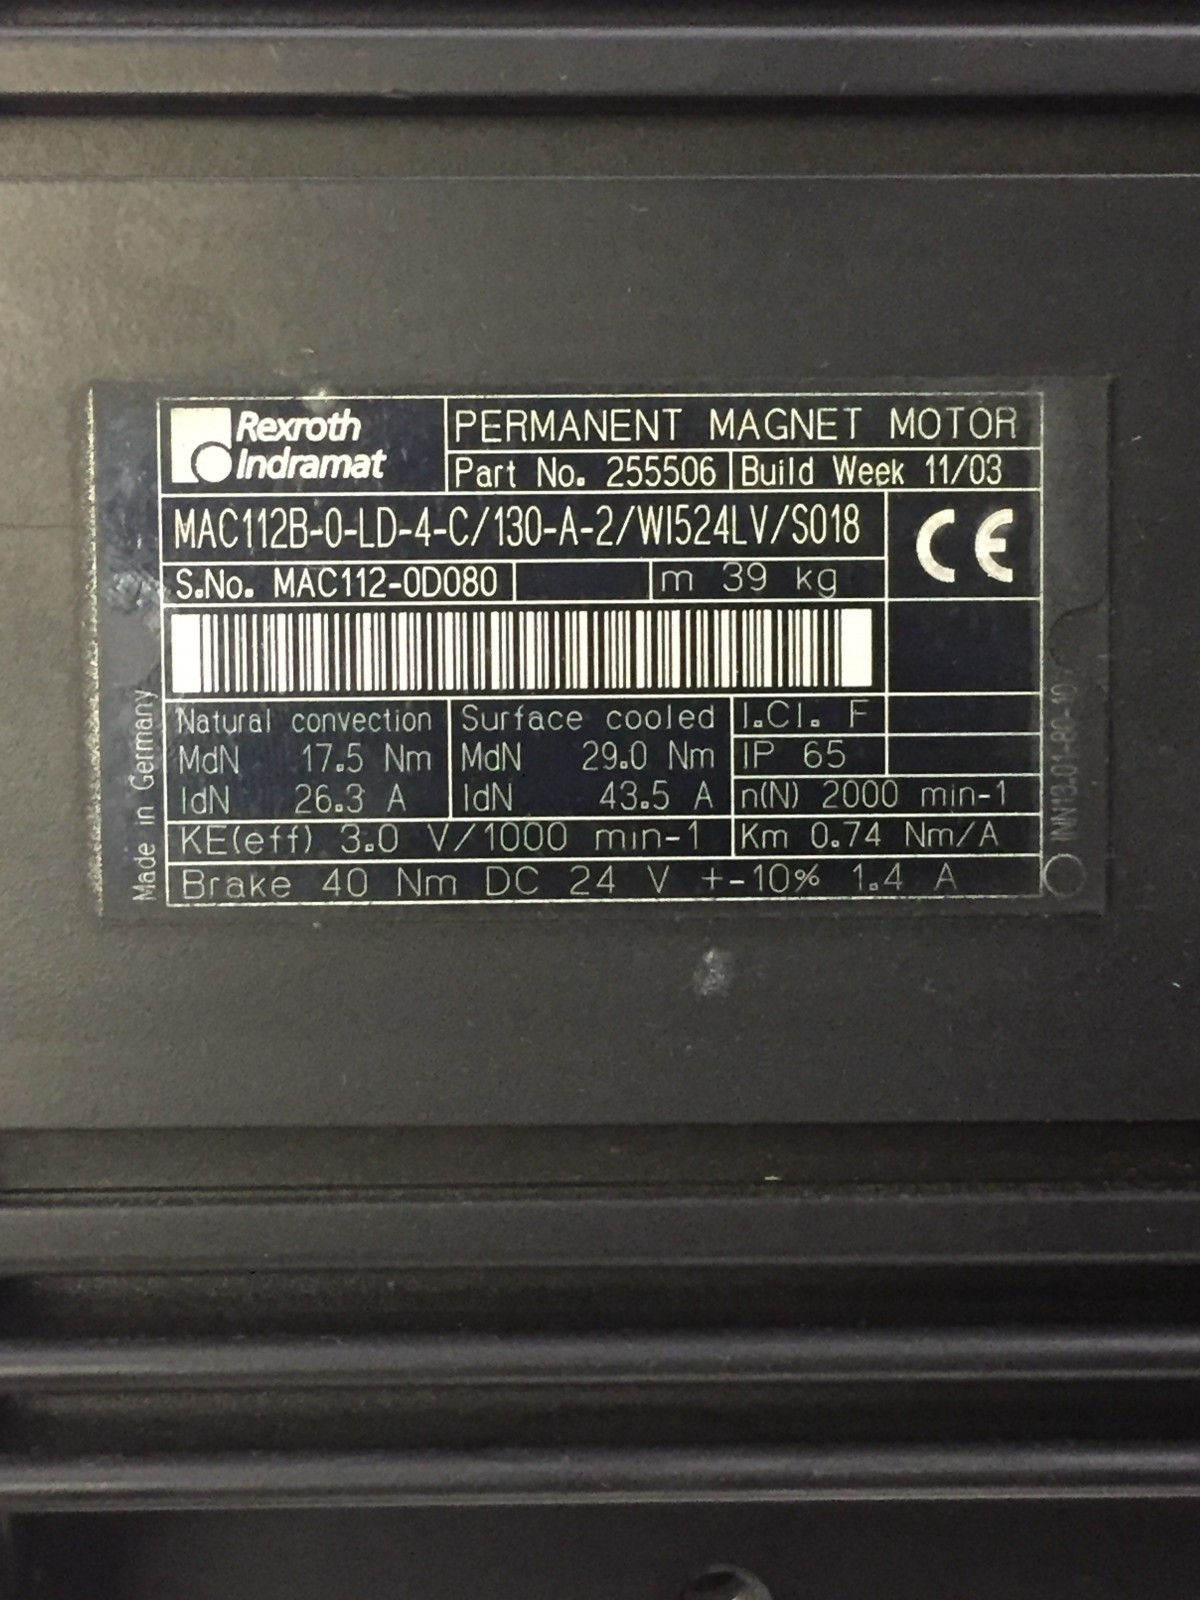 Rexroth Indramat MAC112B-0-LD-4-C/130-A-2/W1524LV/S018 new